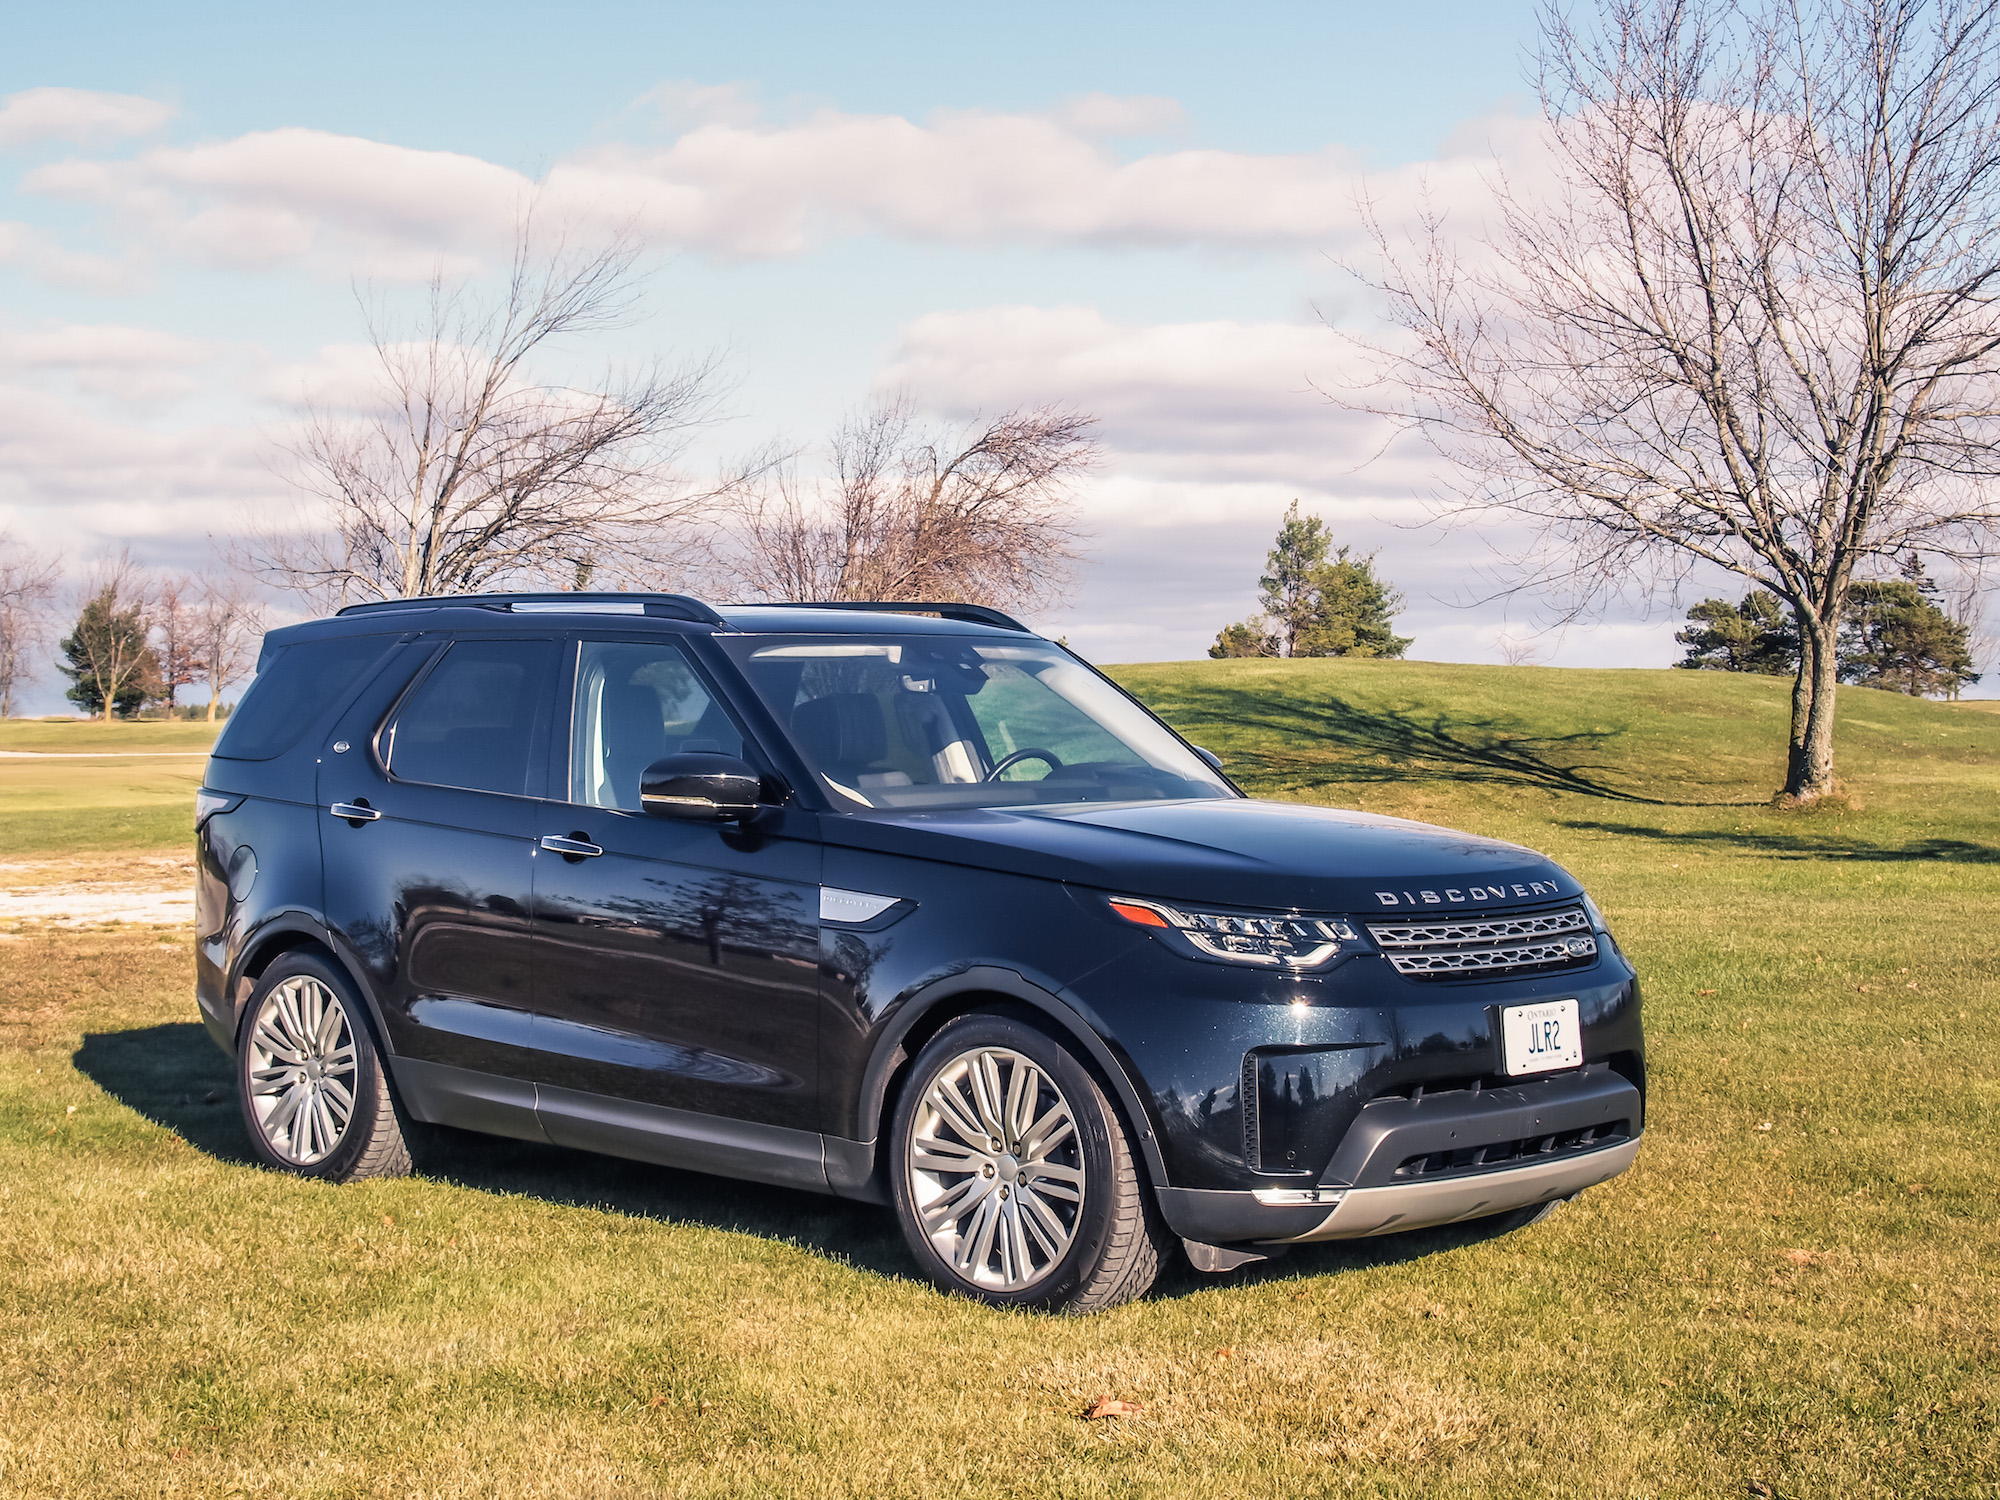 2017 Land Rover Discovery HSE Luxury Td6 Review